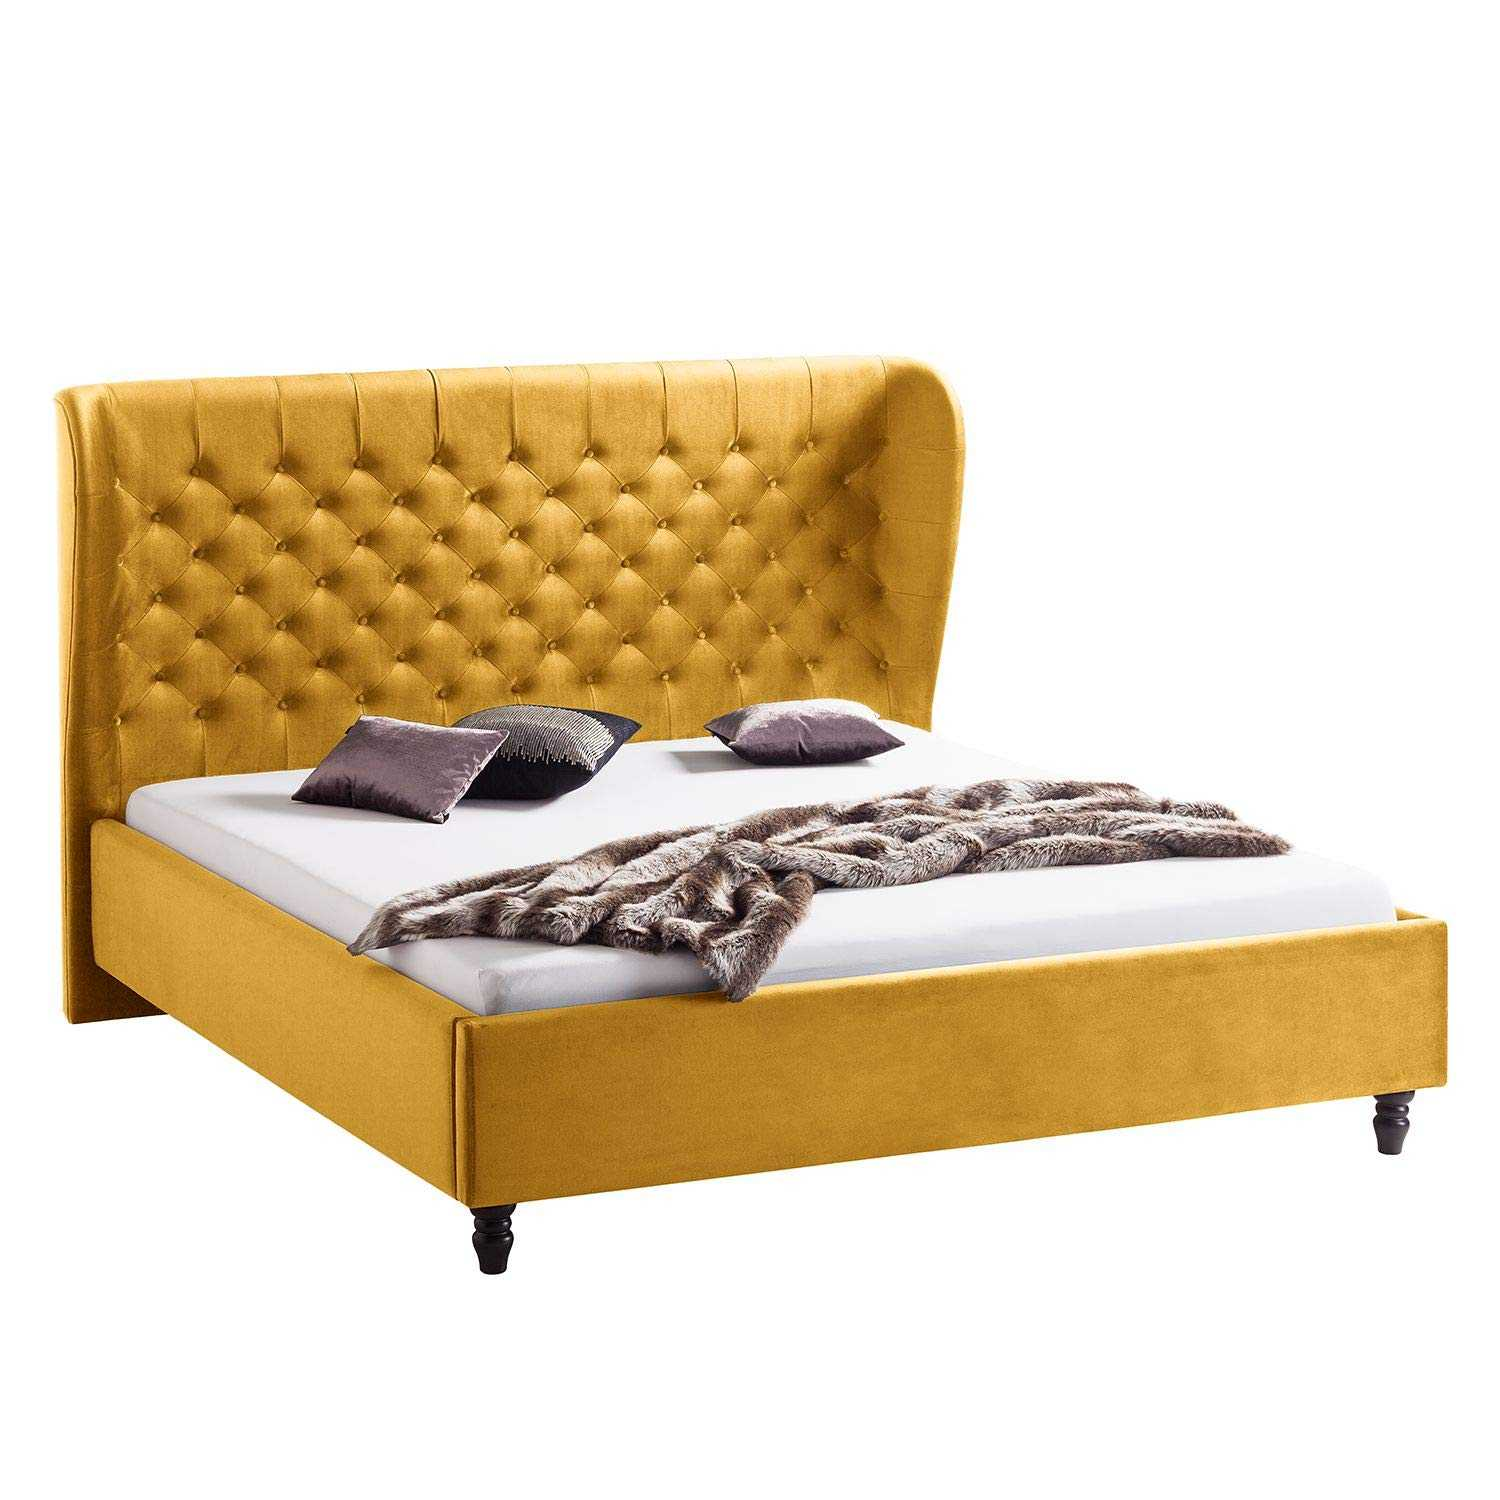 Alvin upholstered bed king Low Height King Size Bed Without Storage (Finish: yellow Leatherite)